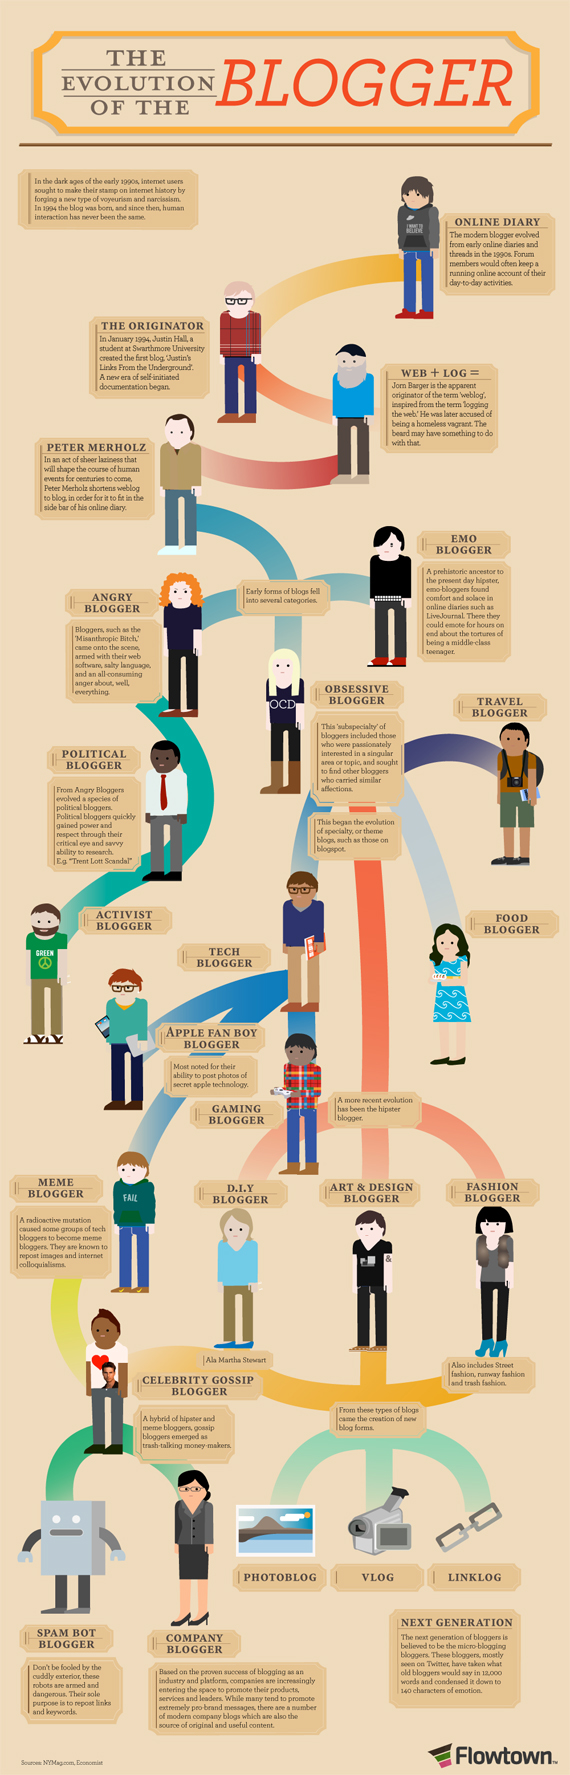 Evolution-Of-The-Blogger-Infographic